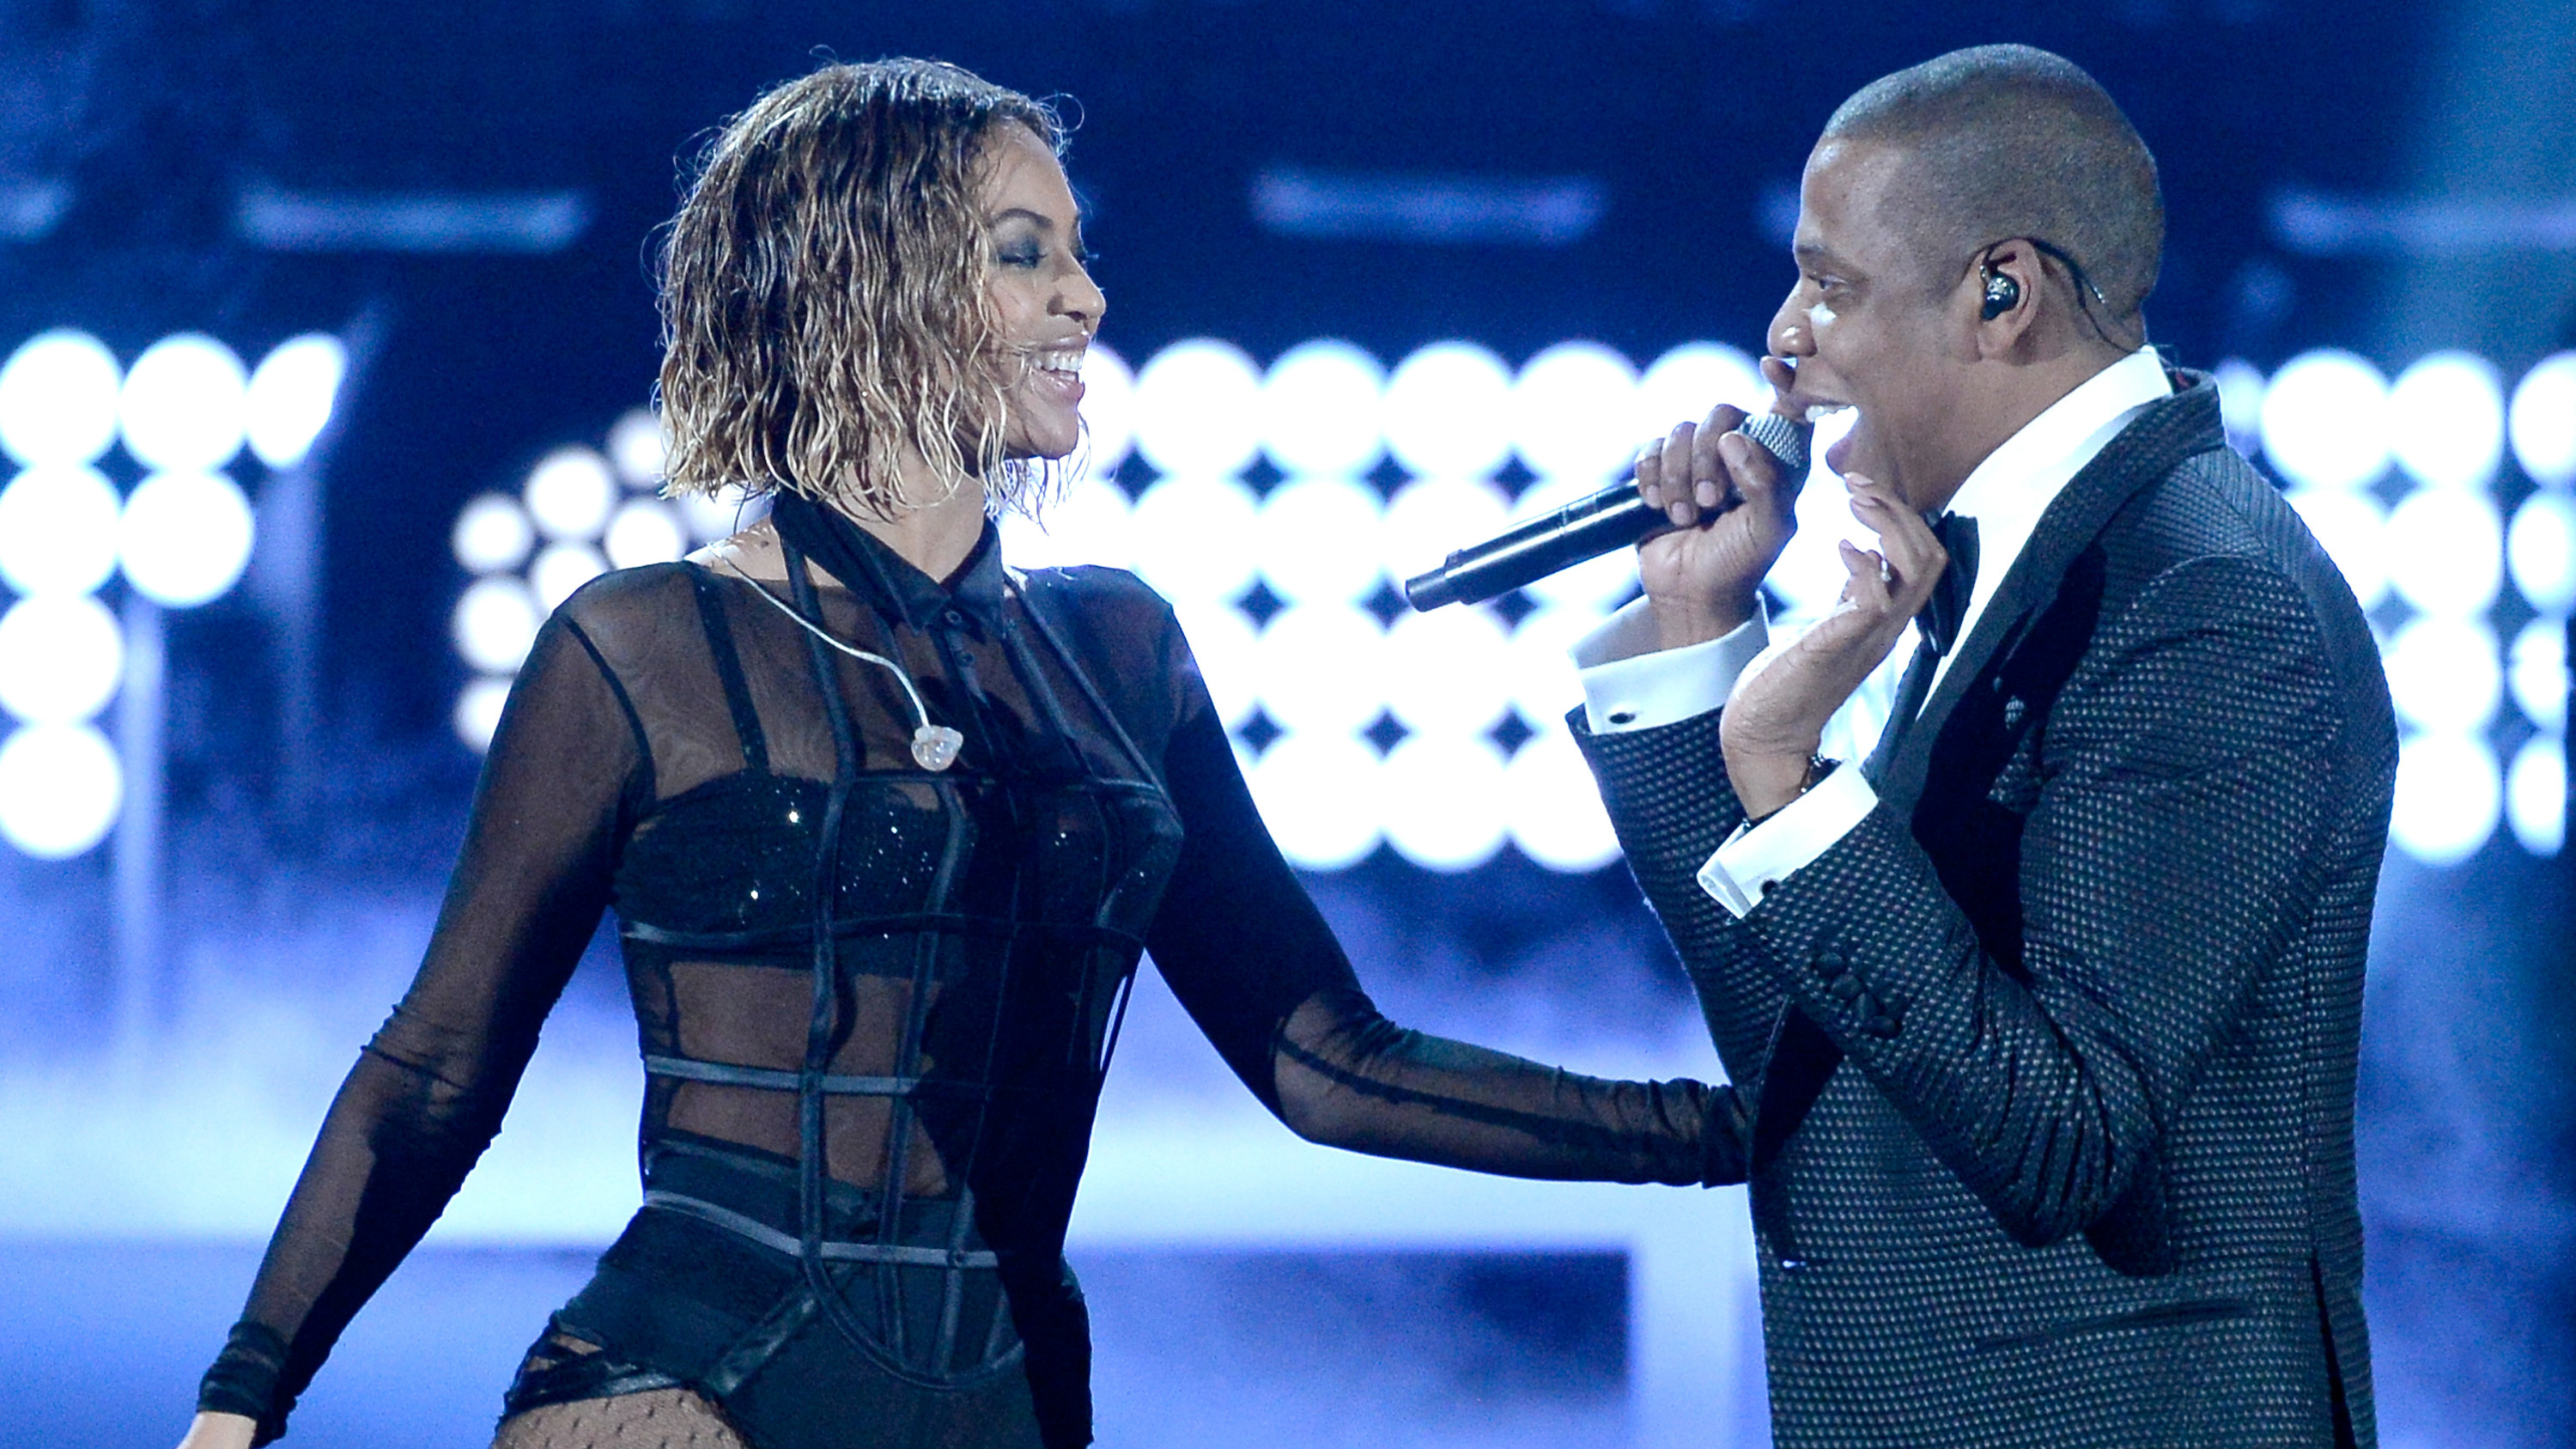 Beyonce and Jay Z perform at the Grammy Awards in January 2014.